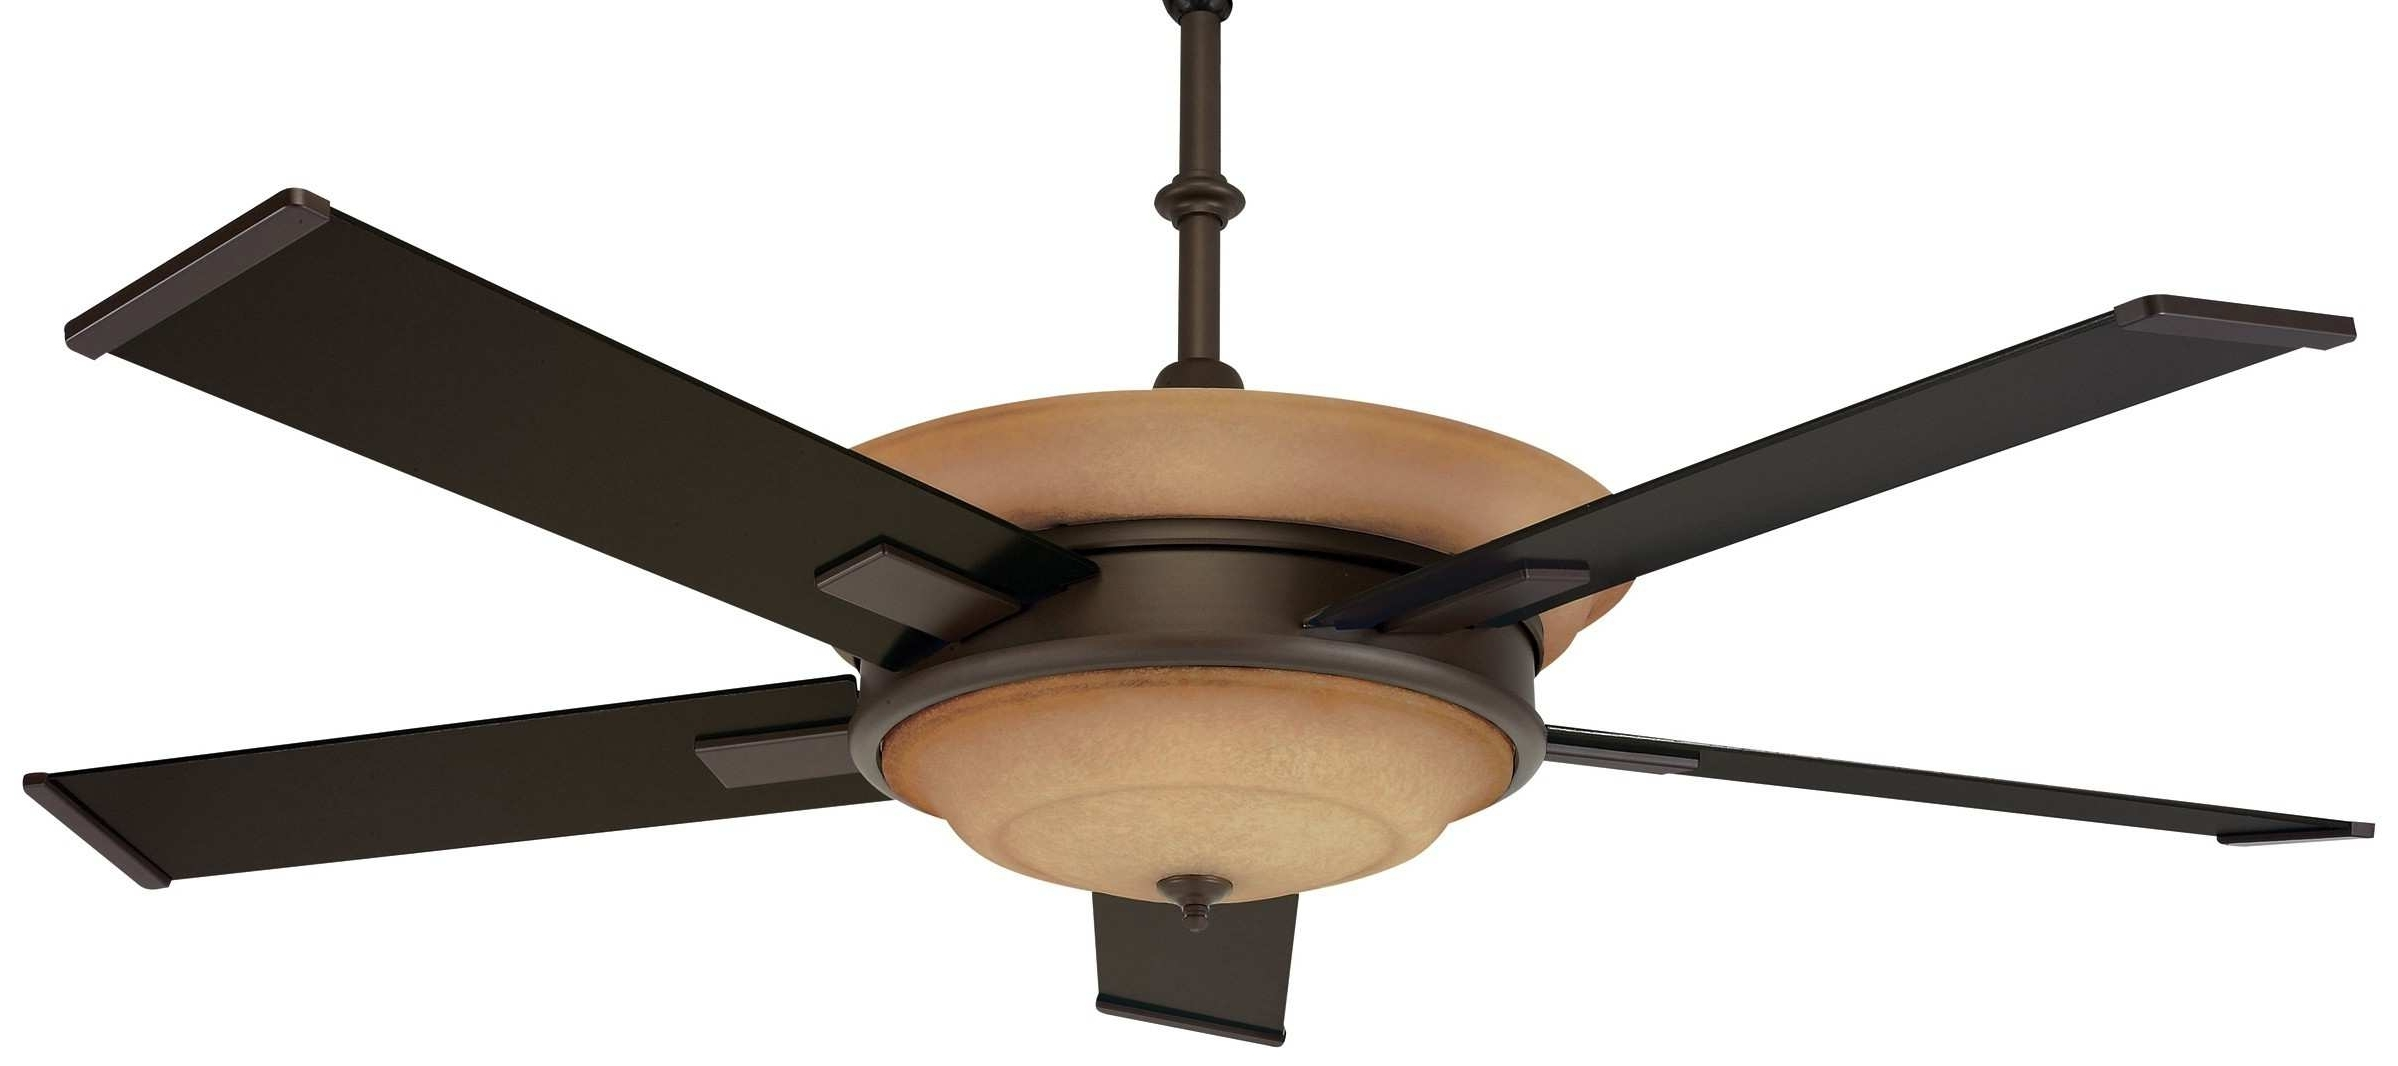 Outdoor Ceiling Fans With Uplights Regarding Well Known Ceiling Fan With Uplight And Downlight Beautiful Outdoor Concord (View 16 of 20)